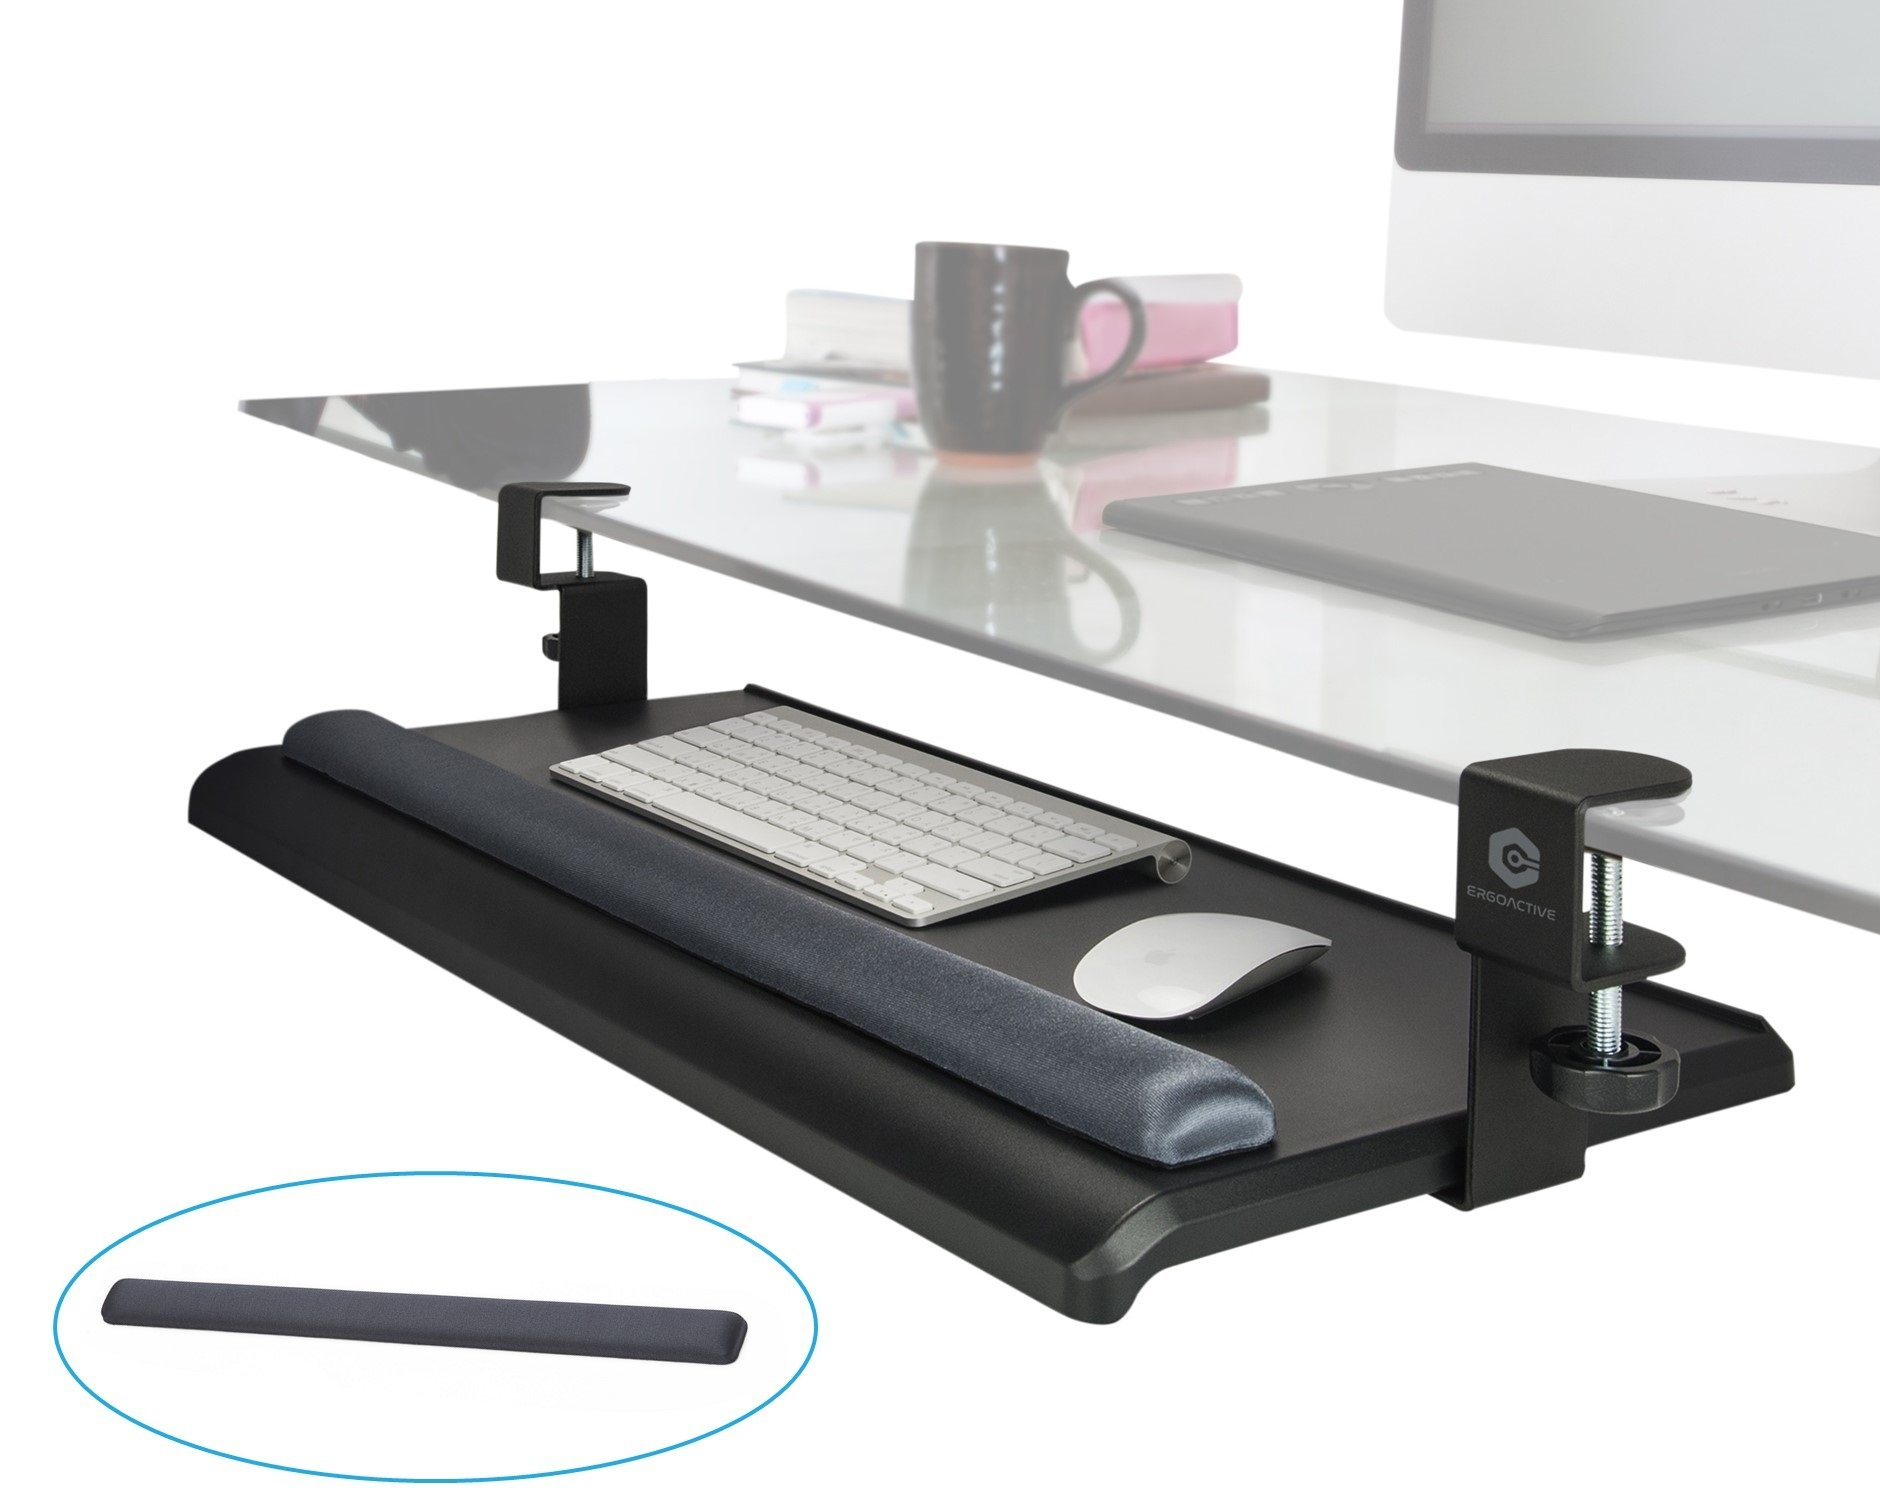 ErgoActive Extra Wide Under Desk Keyboard Tray with Clamp On Easy Installation, No Screws into Desk, Sliding Drawer, Fits Full Size Keyboard and Mouse - Includes Wrist Rest (Wide Tray + Wrist Rest)